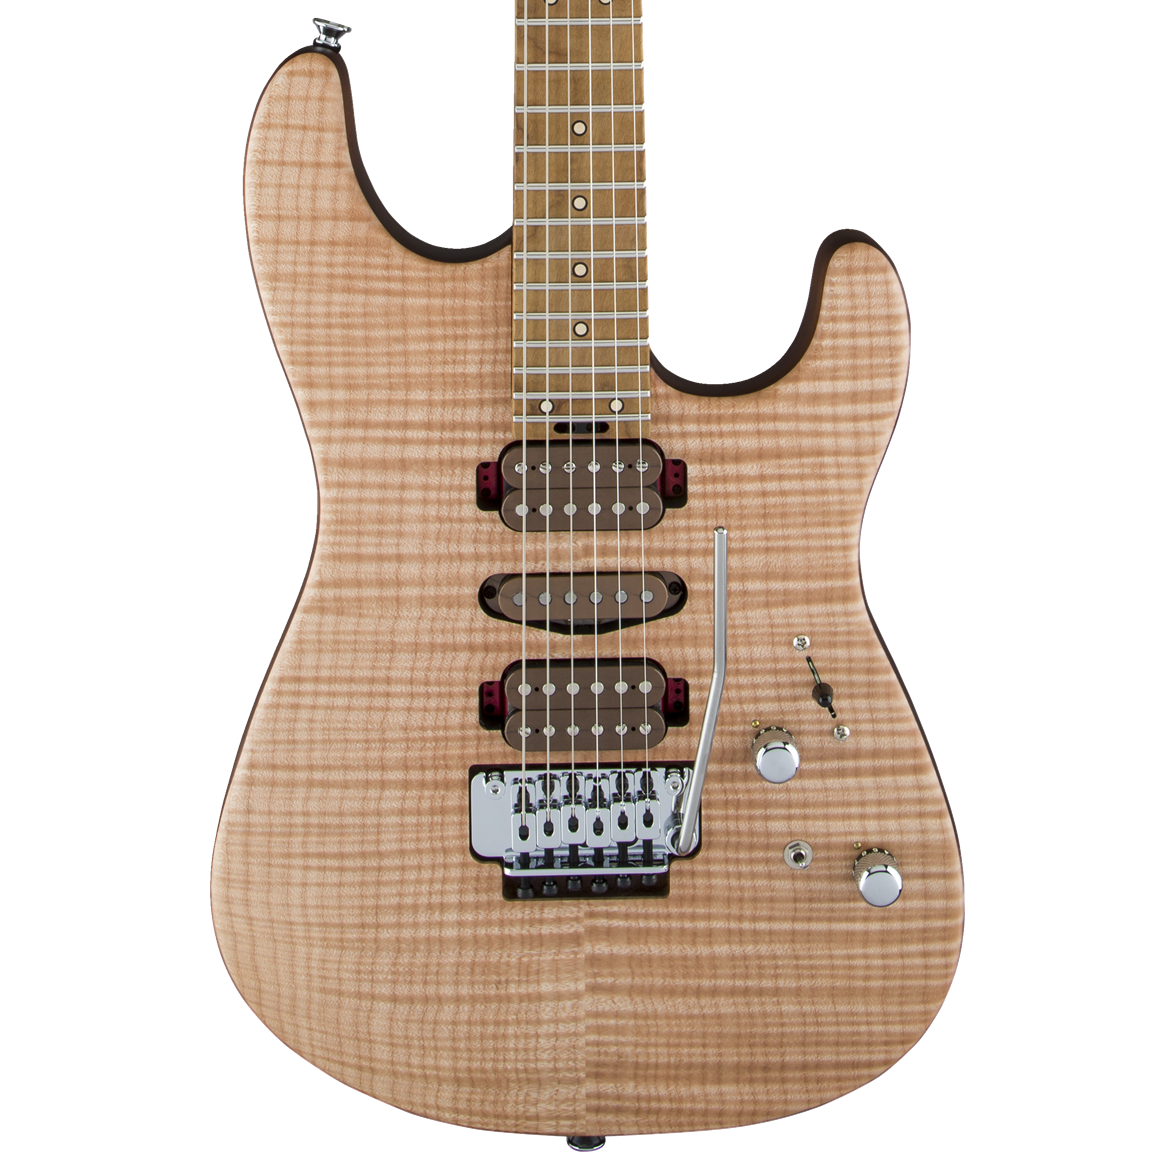 Charvel Guthrie Govan Signature HSH Flame Maple - Caramelized Flame Maple Fingerboard, Natural